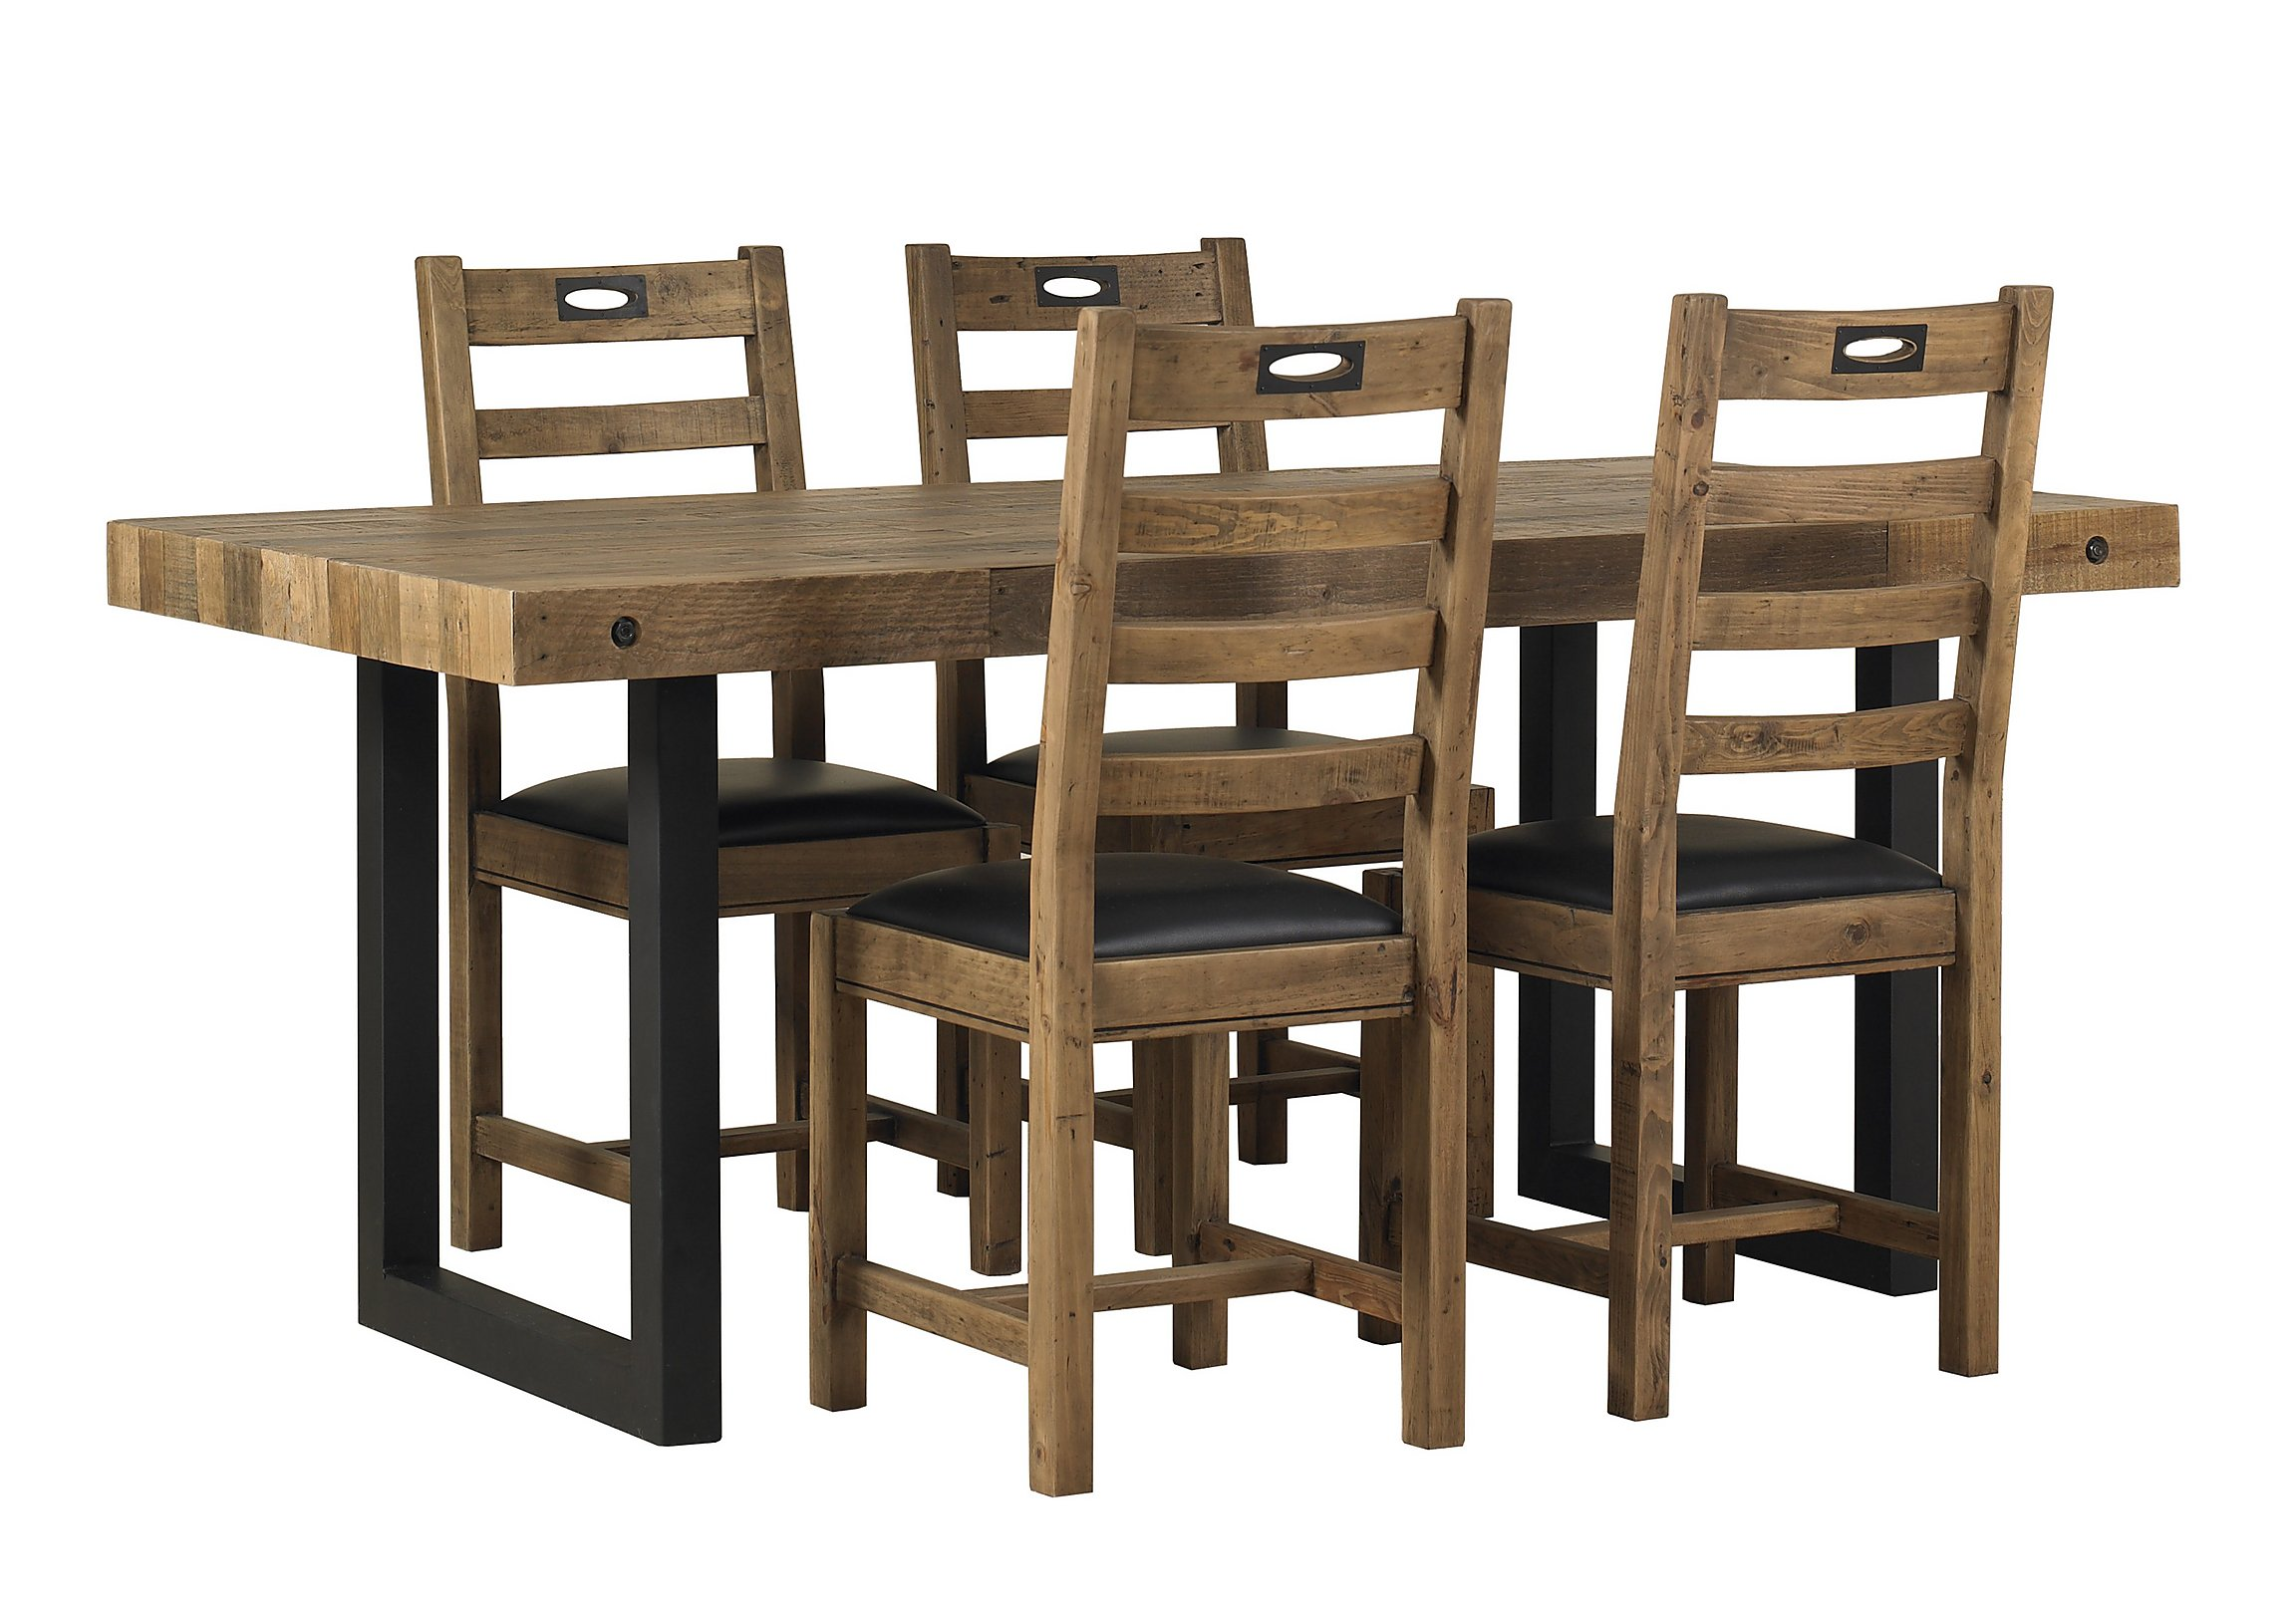 Fresh 4 chair dining table set with price light of for 4 chair dining table